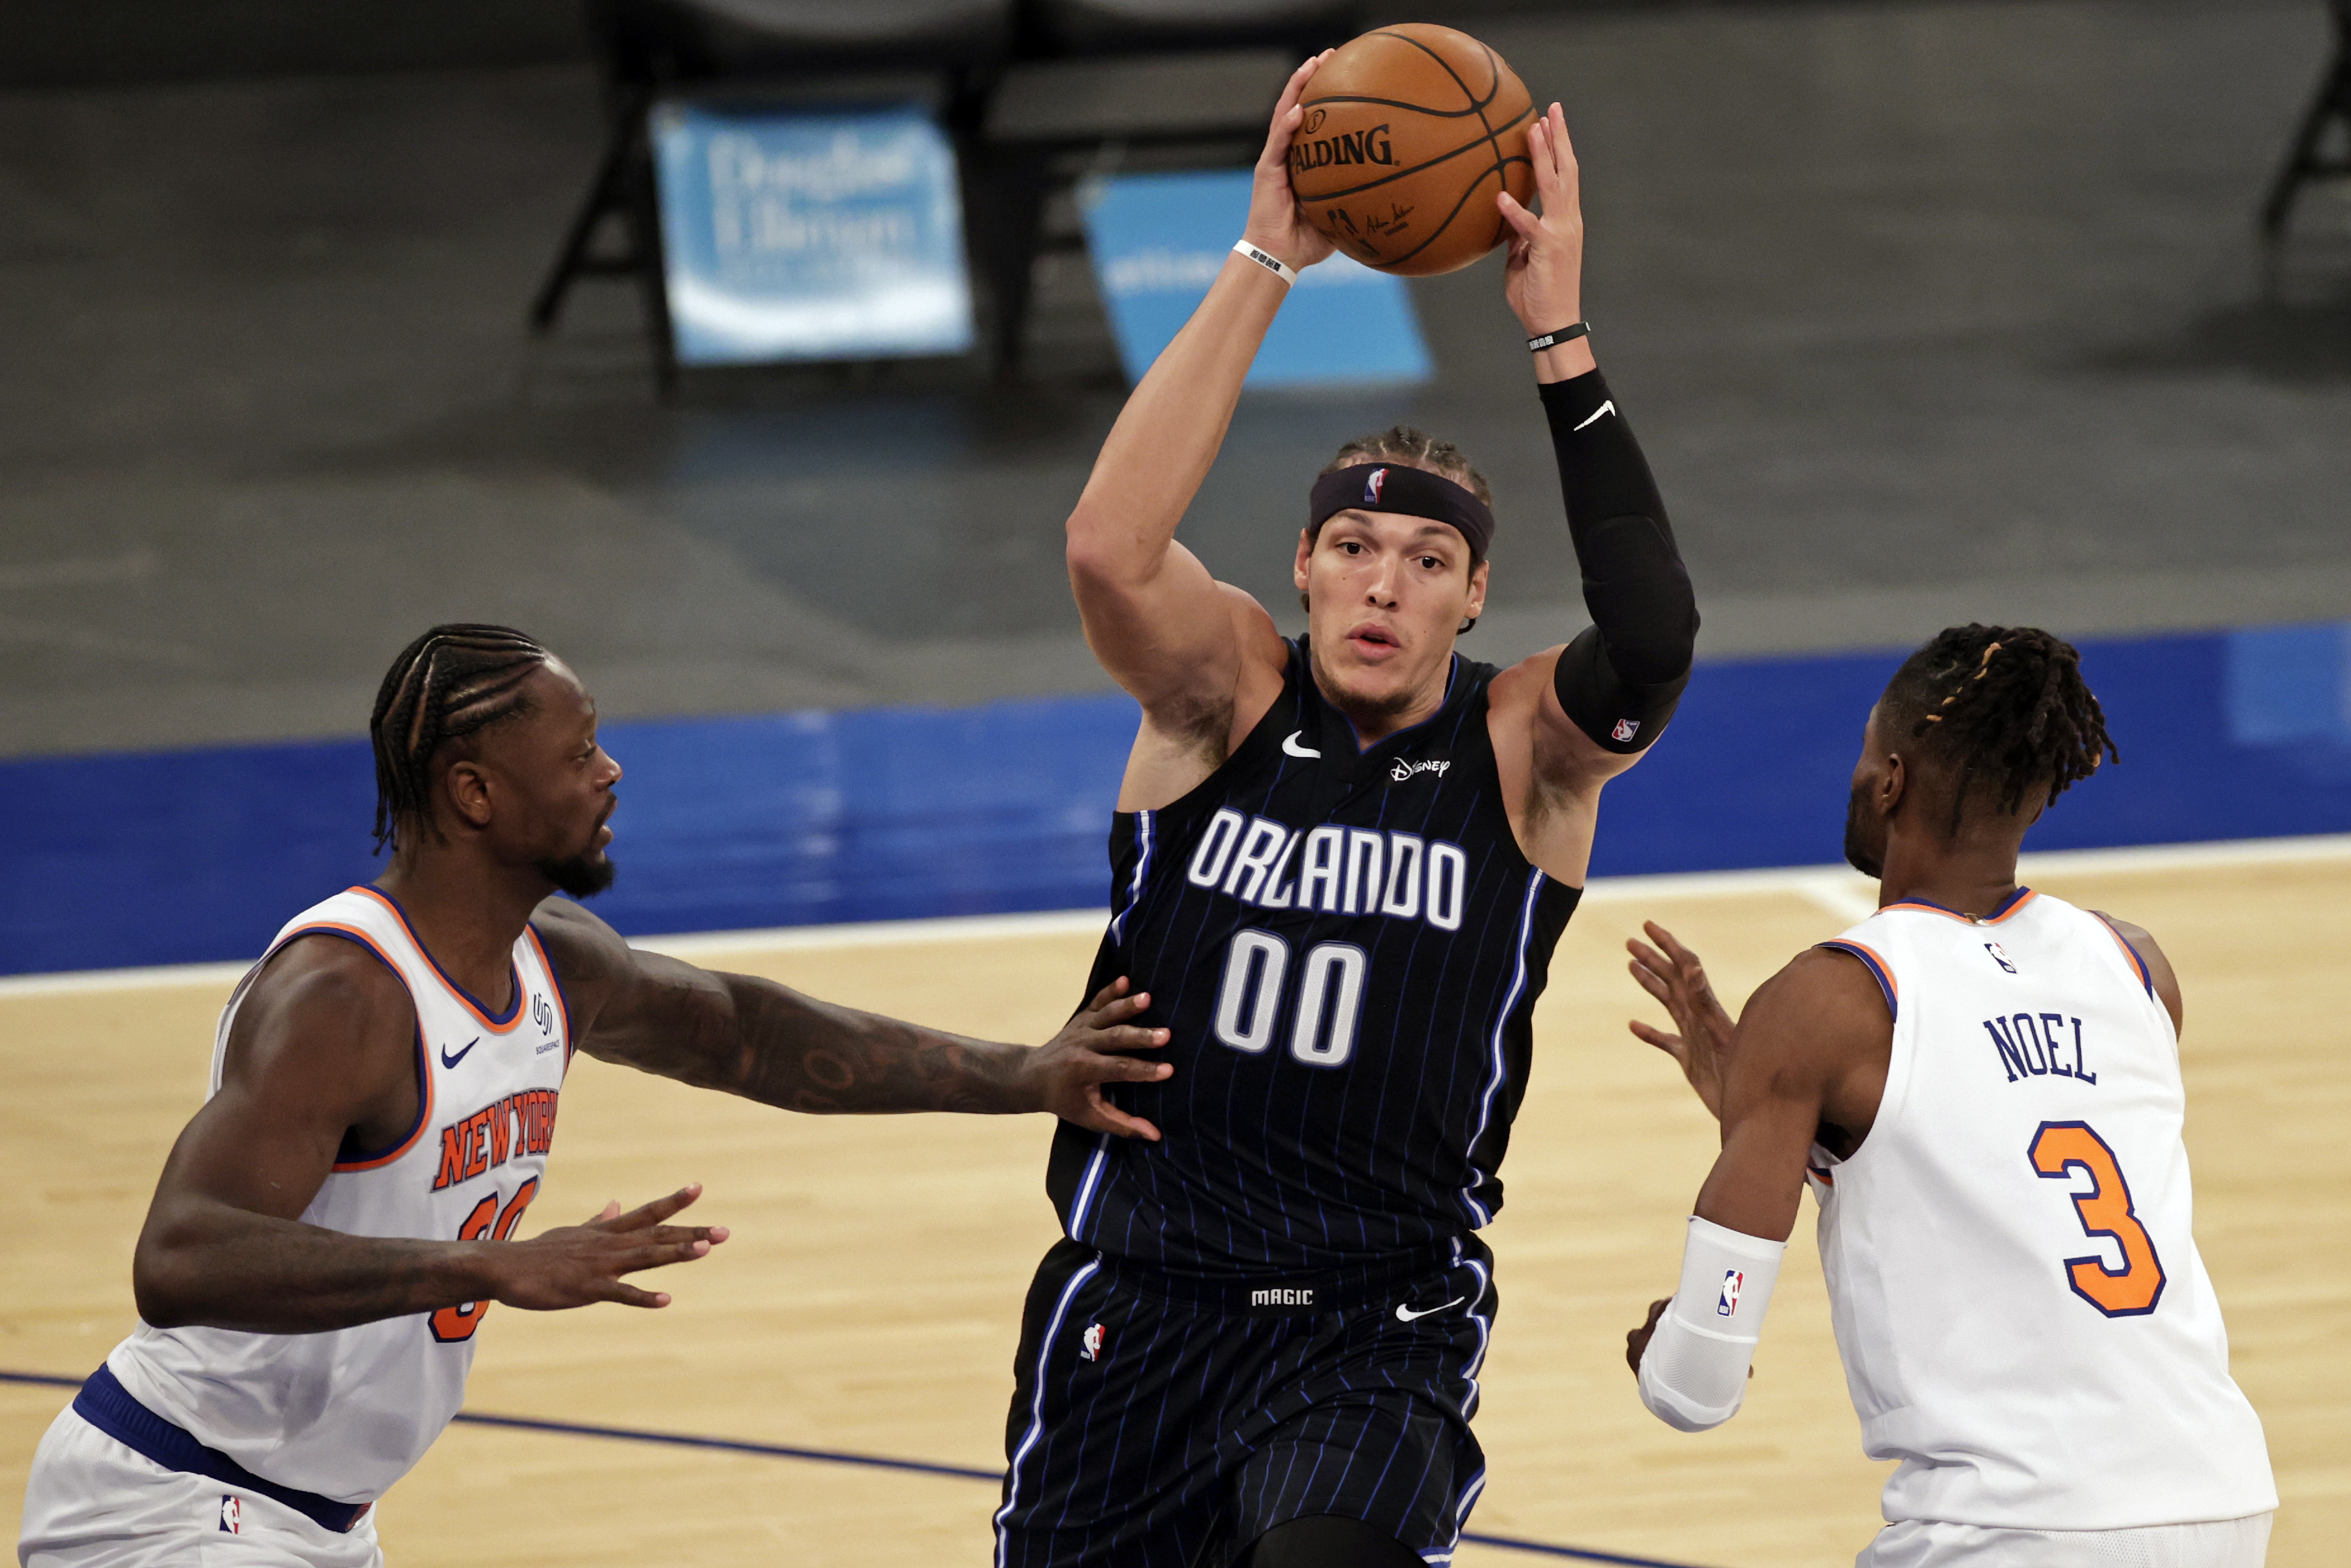 Mar 18, 2021; New York, New York, USA; Orlando Magic forward Aaron Gordon (00) looks to pass between New York Knicks forward Julius Randle and center Nerlens Noel (3) during the second half of an NBA basketball game Thursday, March 18, 2021, in New York.